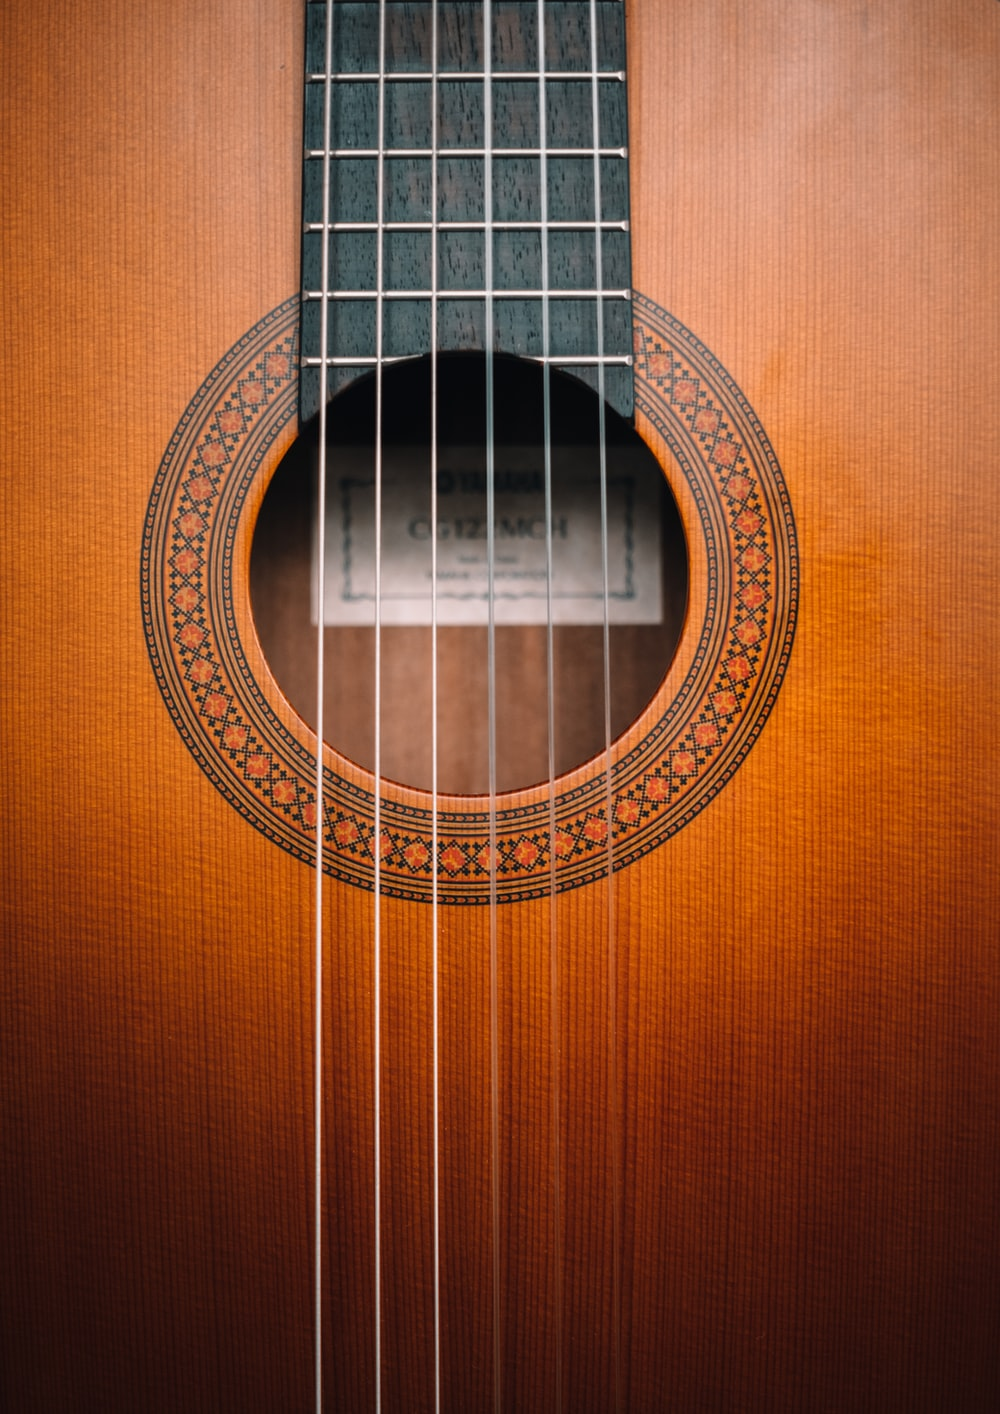 brown acoustic guitar on brown wooden surface